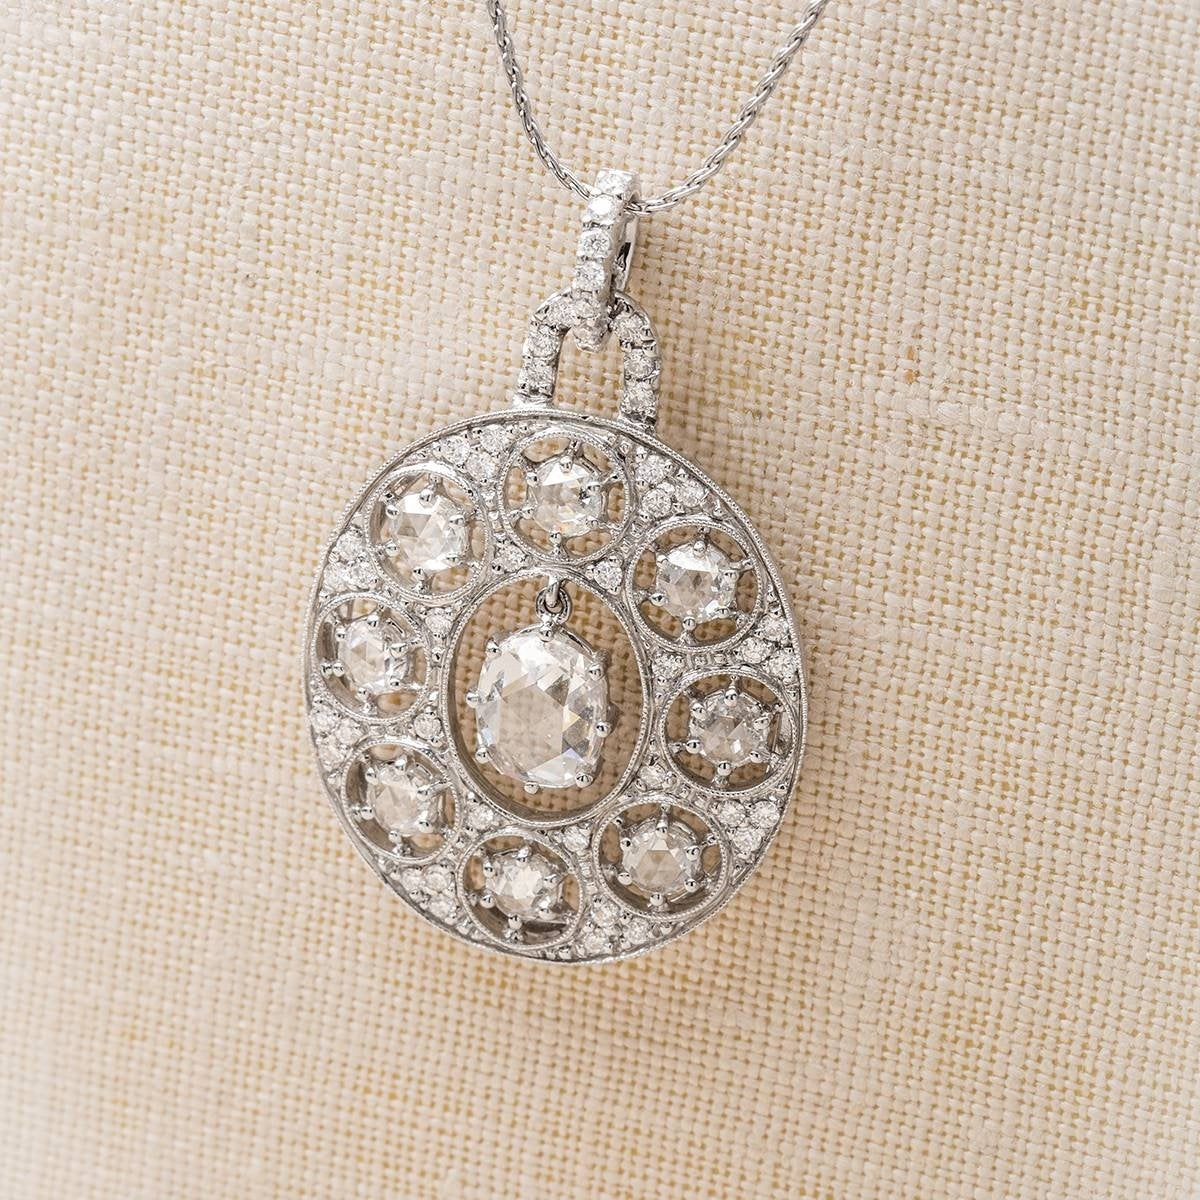 Vintage 18K Gold And Rose Cut Diamond Pendant With Regard To Most Up To Date Round Brilliant Diamond Straightline Necklaces (View 25 of 25)